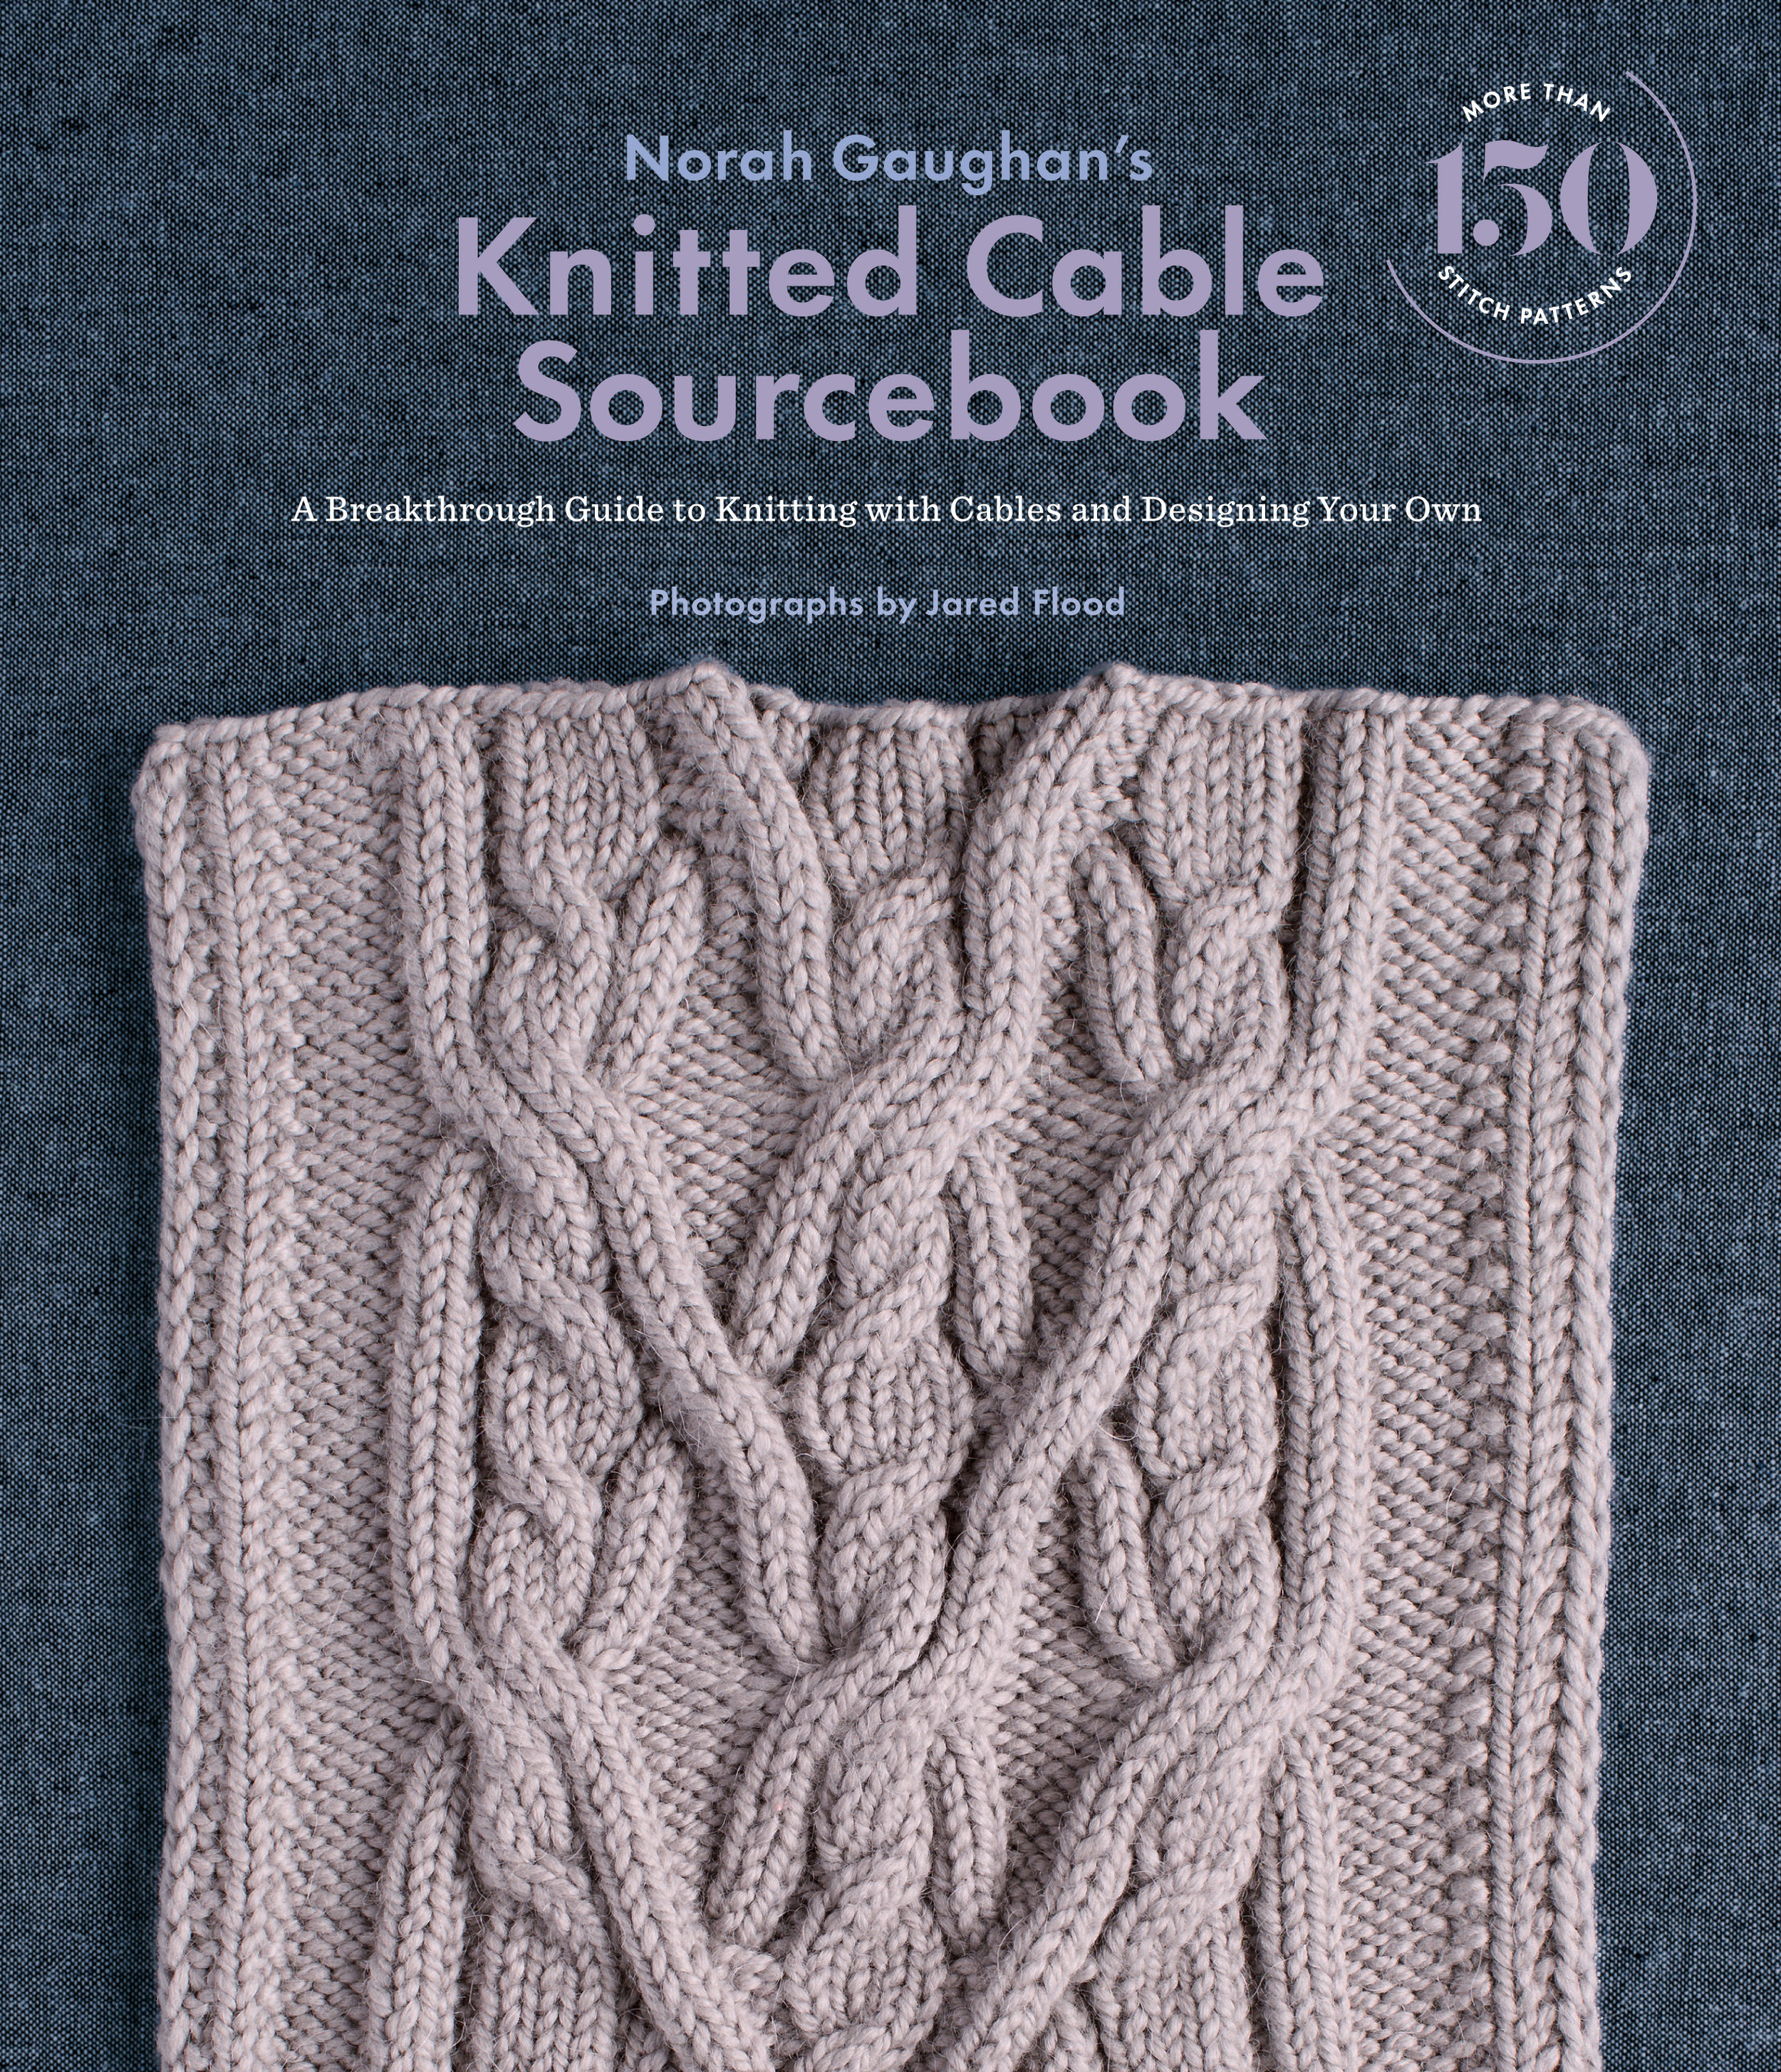 http://www.abramsbooks.com/product/norah-gaughans-knitted-cable-sourcebook_9781419722394/